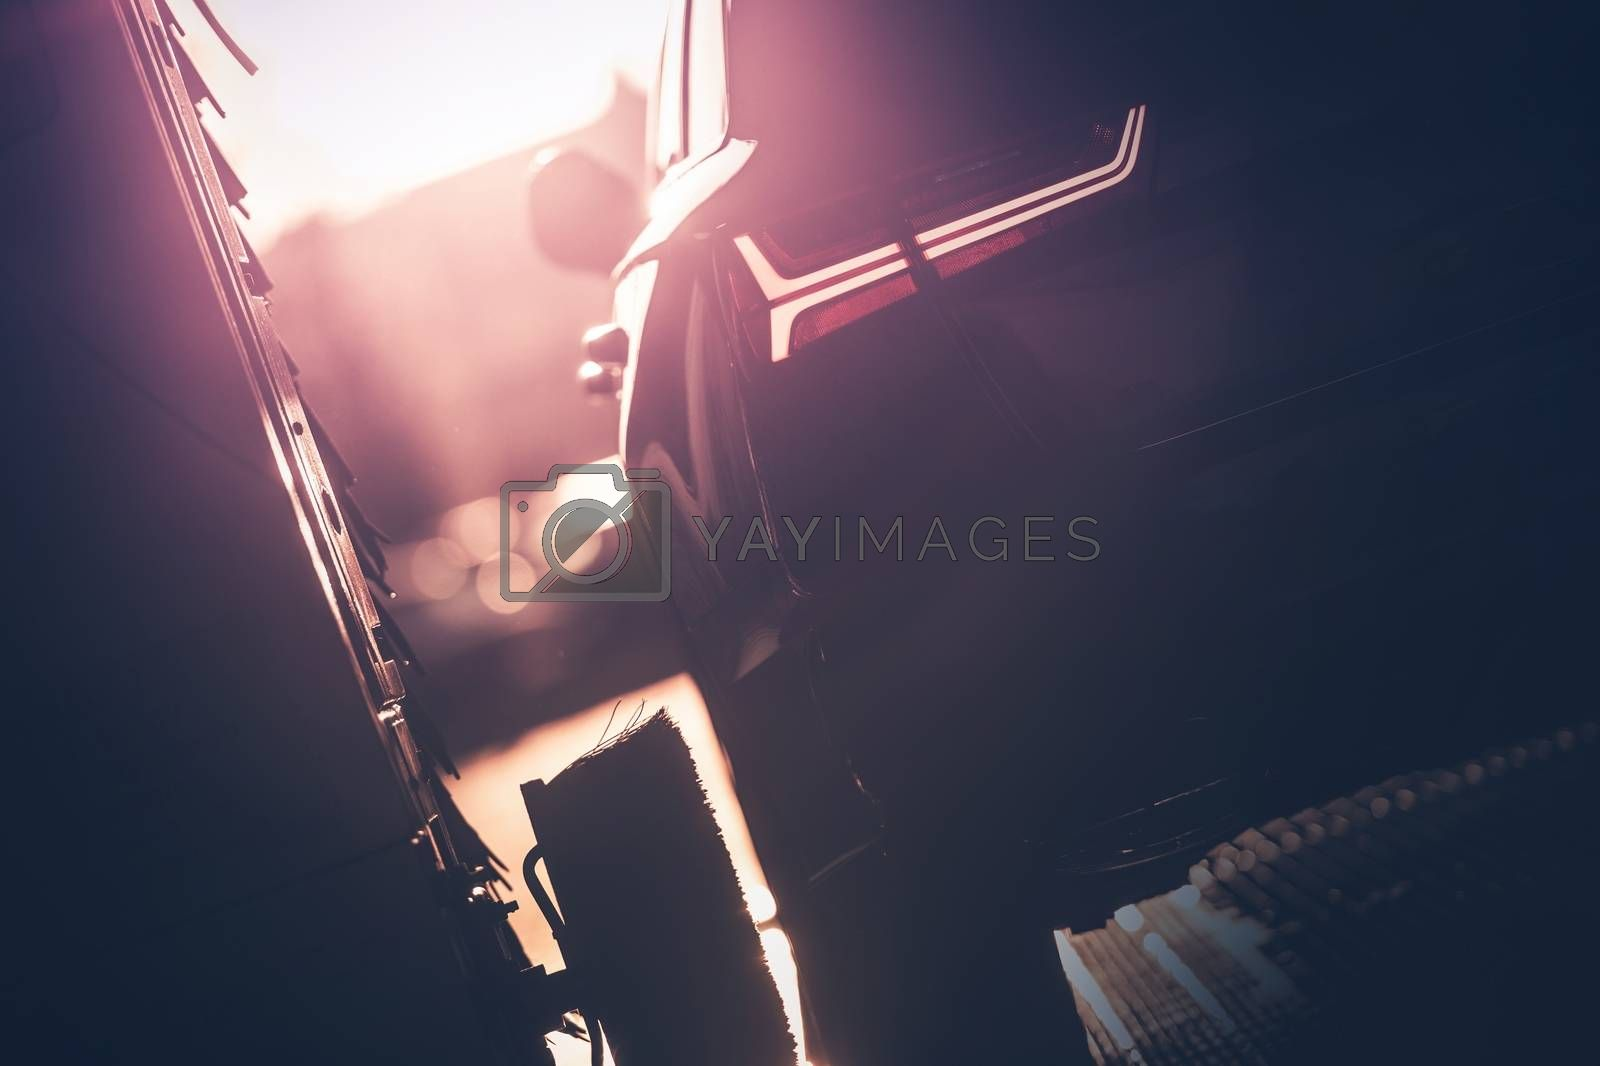 Royalty free image of Professional Car Washing by welcomia